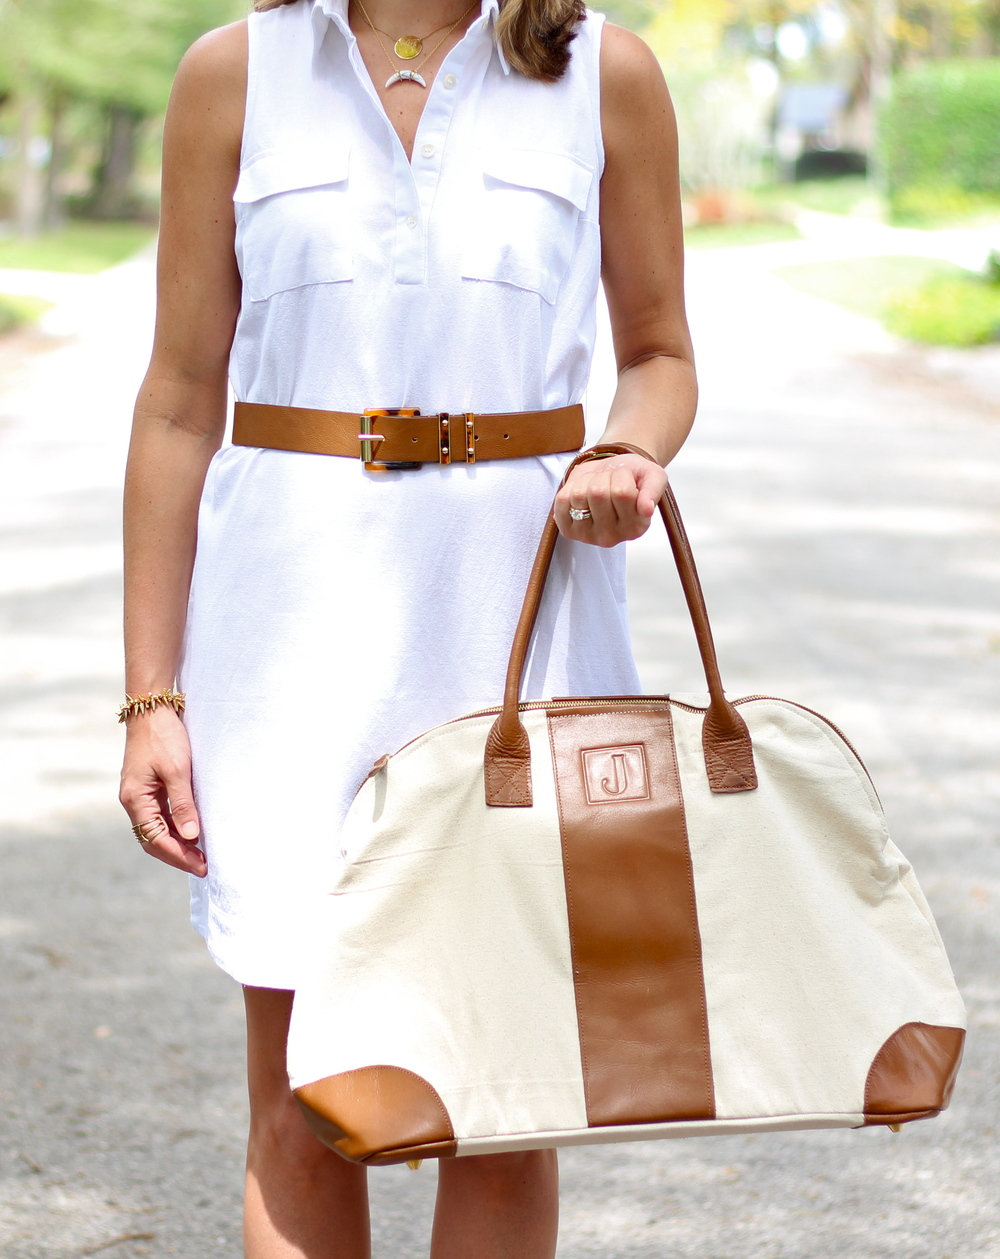 Mud Pie dress and bag